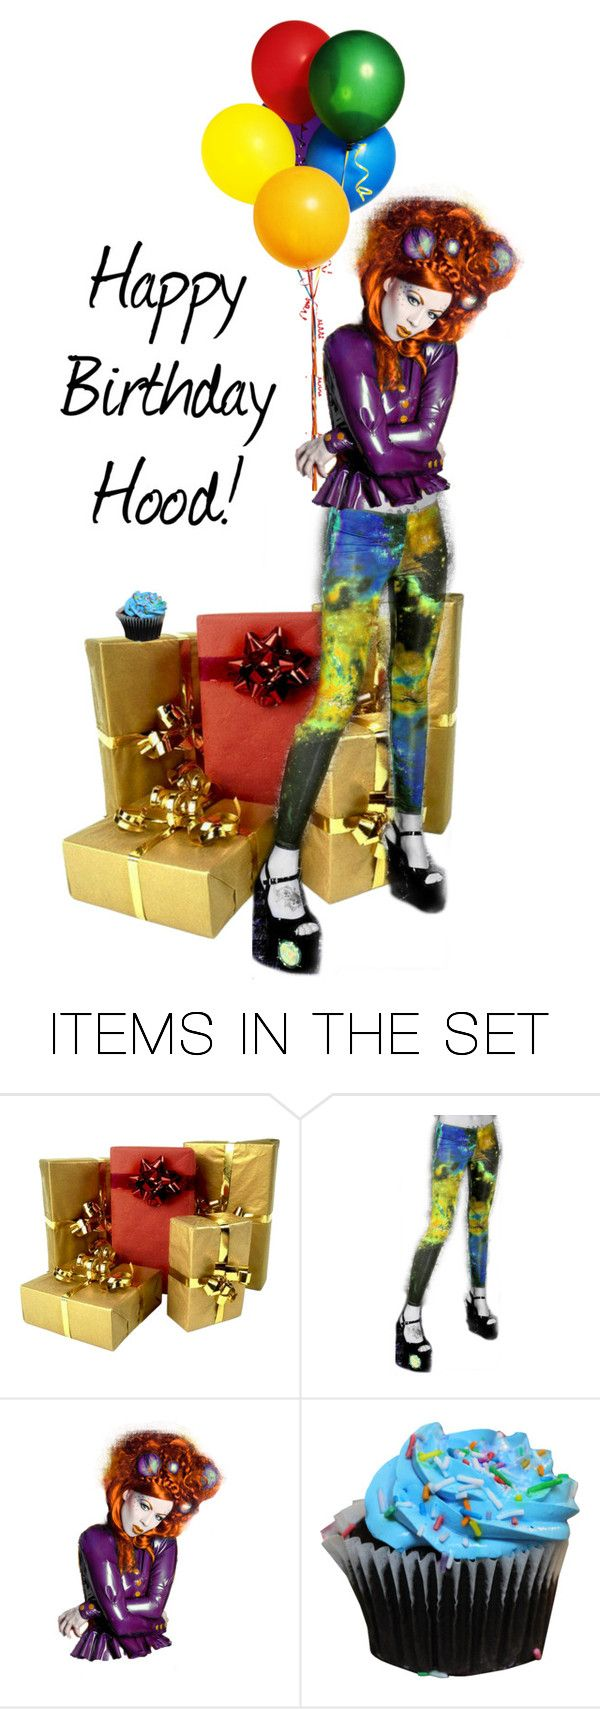 """""""Jason's B-Day"""" by dress-n-dysfunktion ❤ liked on Polyvore featuring art"""